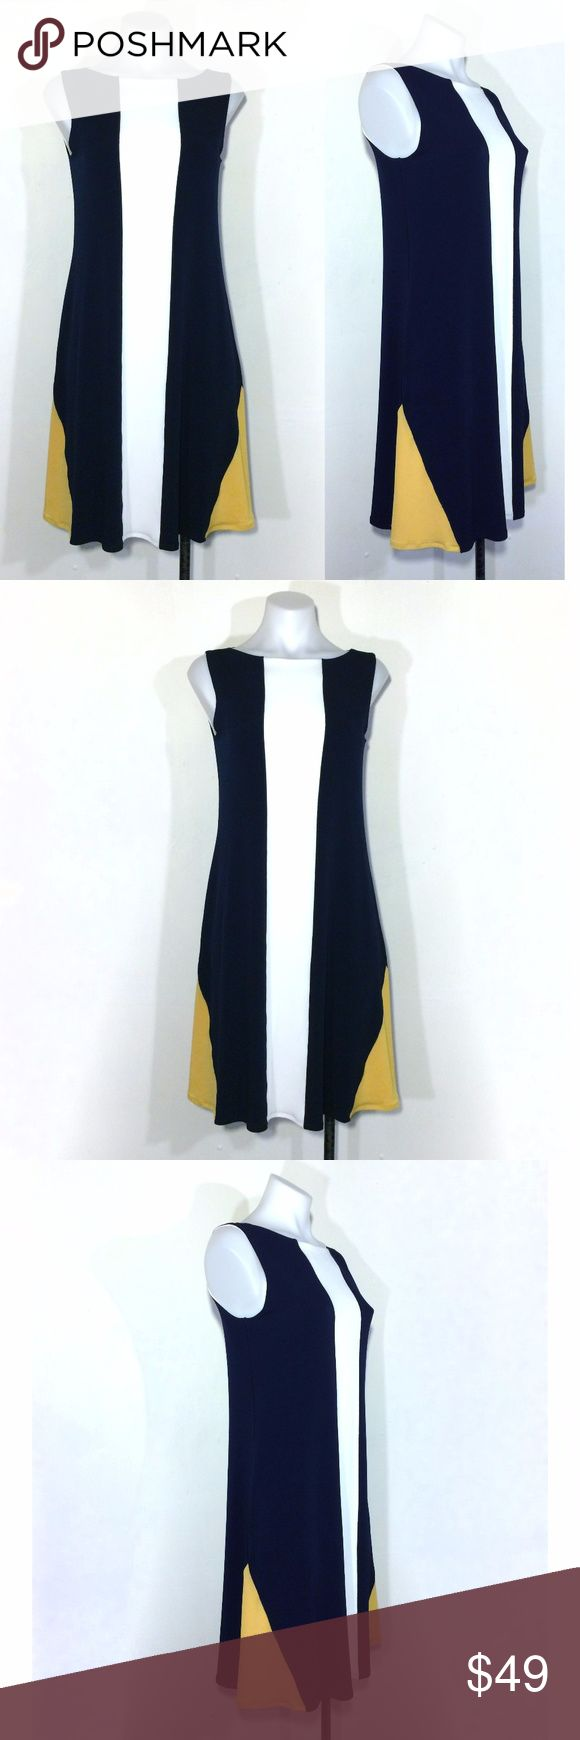 "Eva Varro geometric colorblock shift trapeze dress Geometric colorblock dress in striking navy blue, white, and yellow in a heavyweight high quality stretch poly jersey knit that hangs & moves gracefully. I love the yellow triangles in this design - so cool and unusual. Fully lined. 92% polyester, 8% spandex. 35"" bust (unstretched, fabric is very stretchy, can stretch 10+ inches). 36"" long. Size Small. Excellent condition. Eva Varro Dresses Midi"